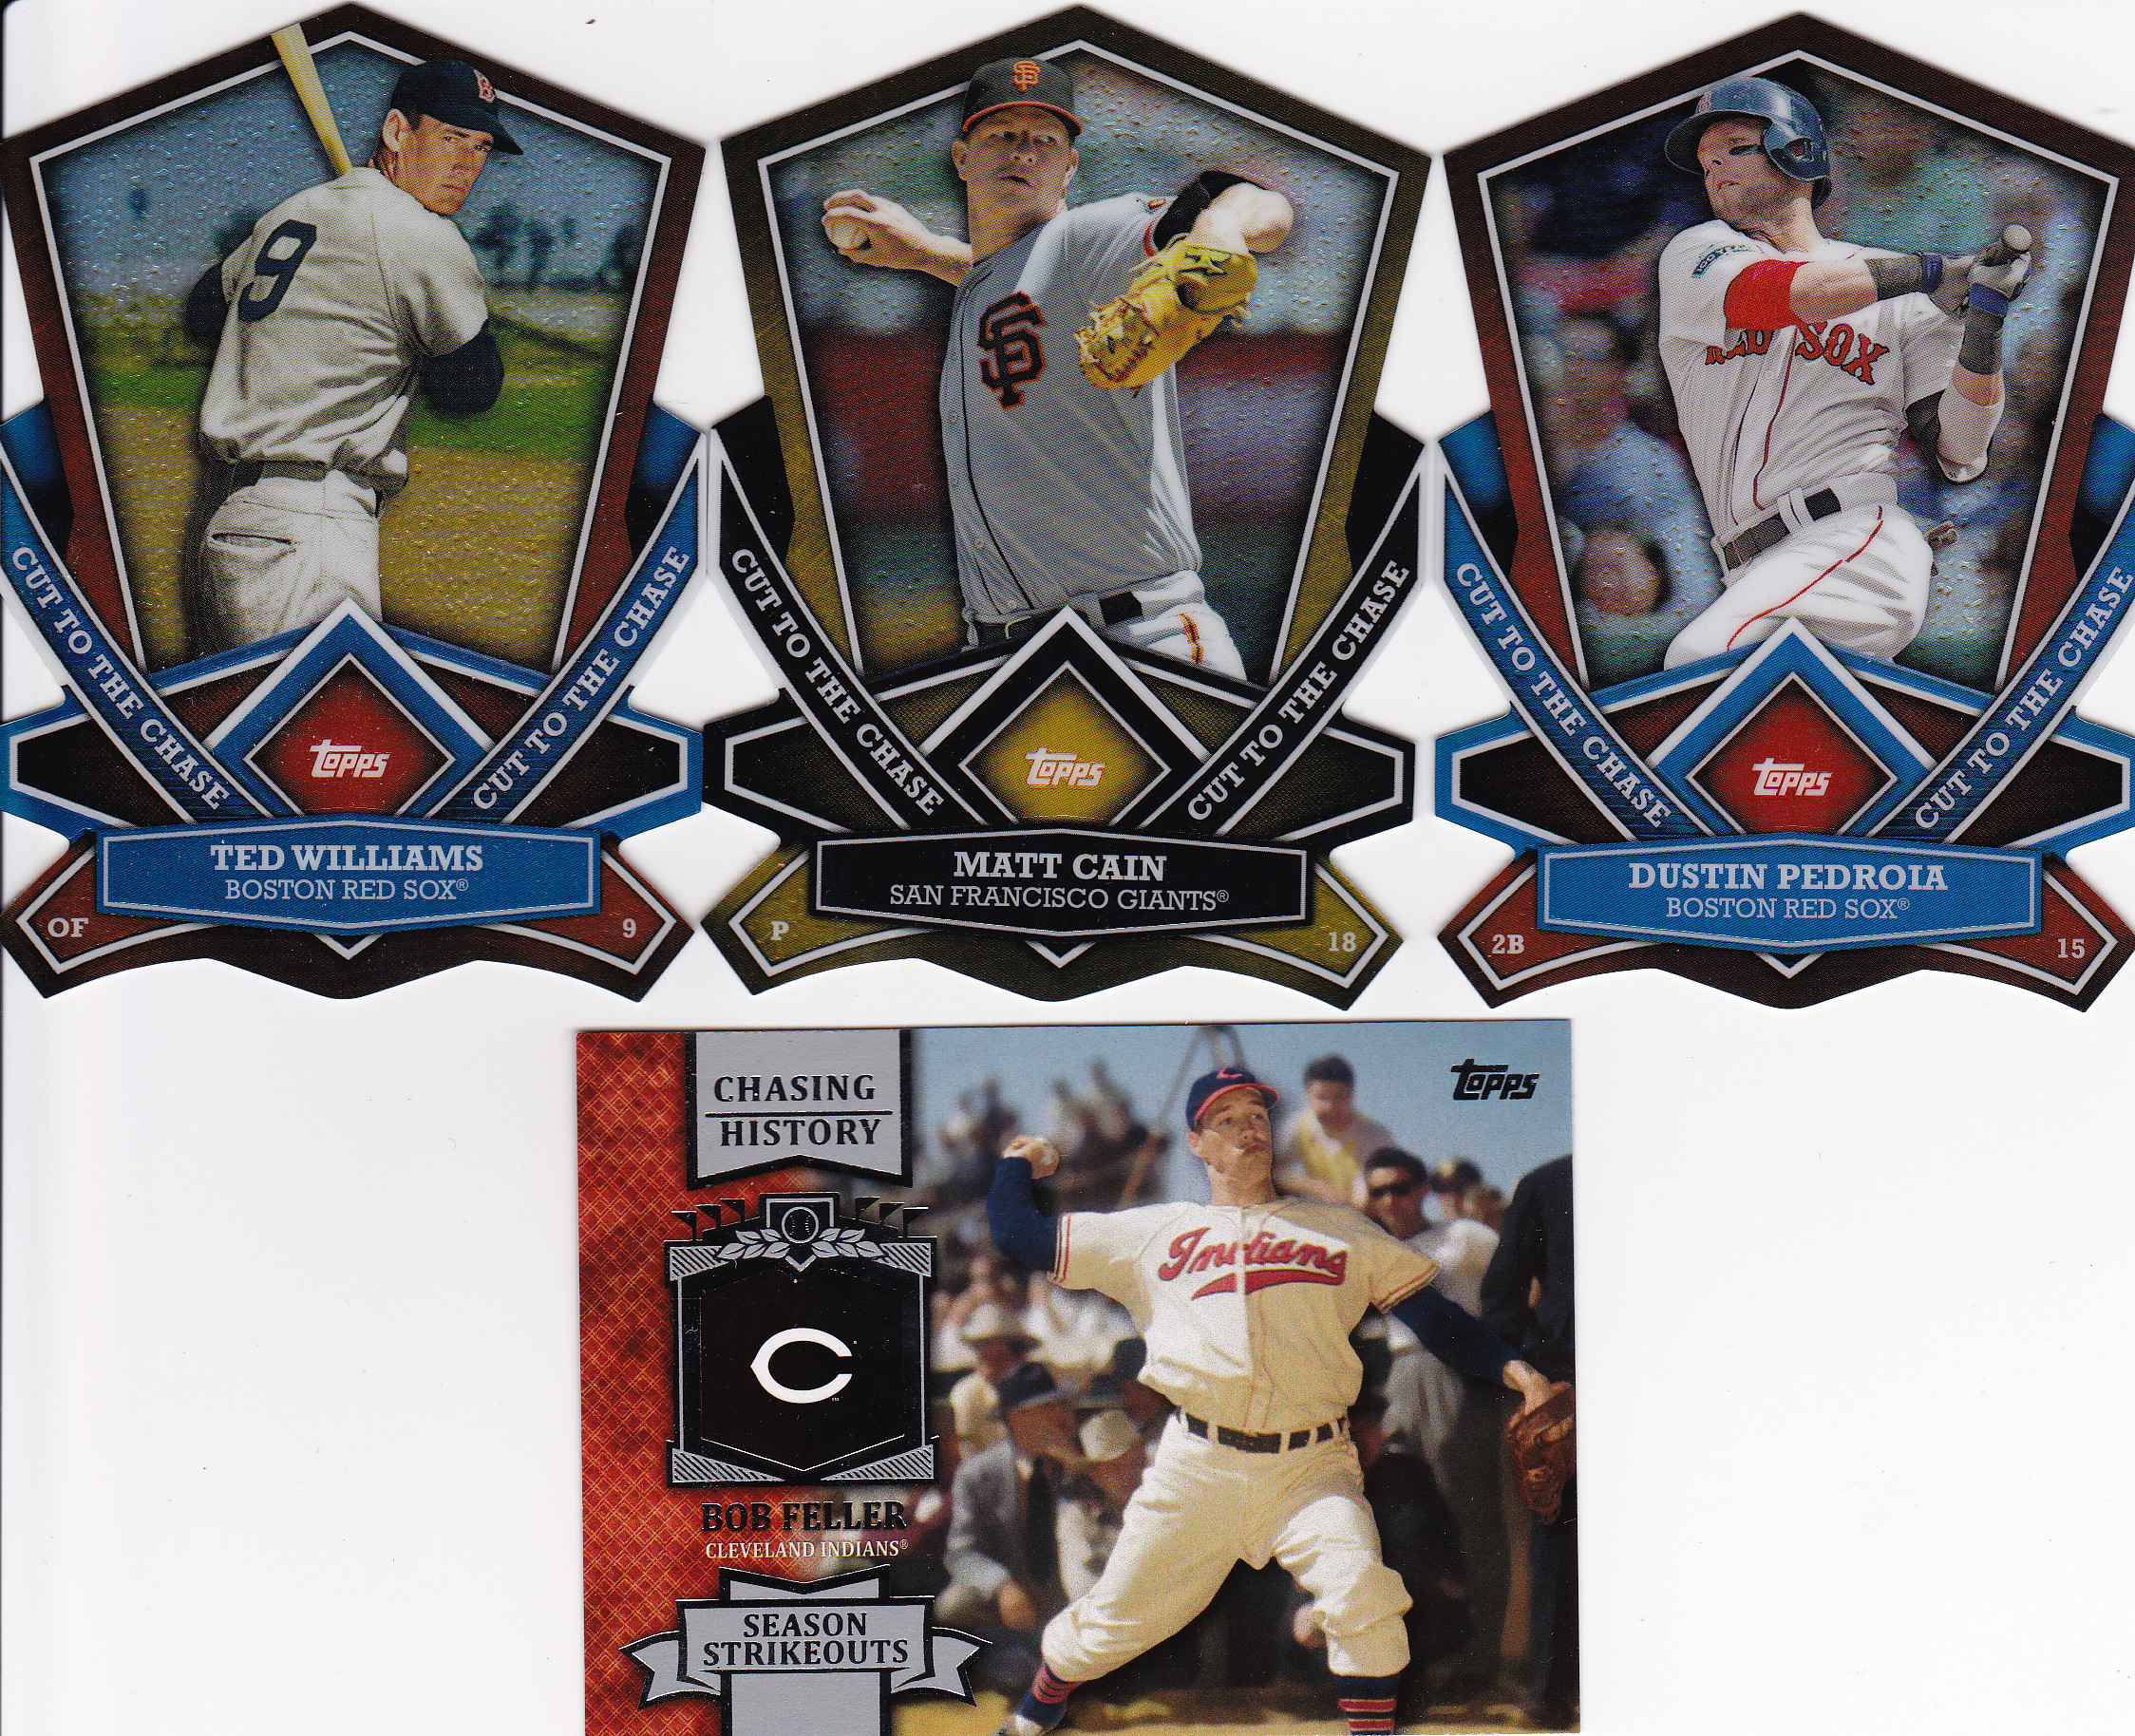 Trade Anthony June 13 - Topps 2013 Inserts